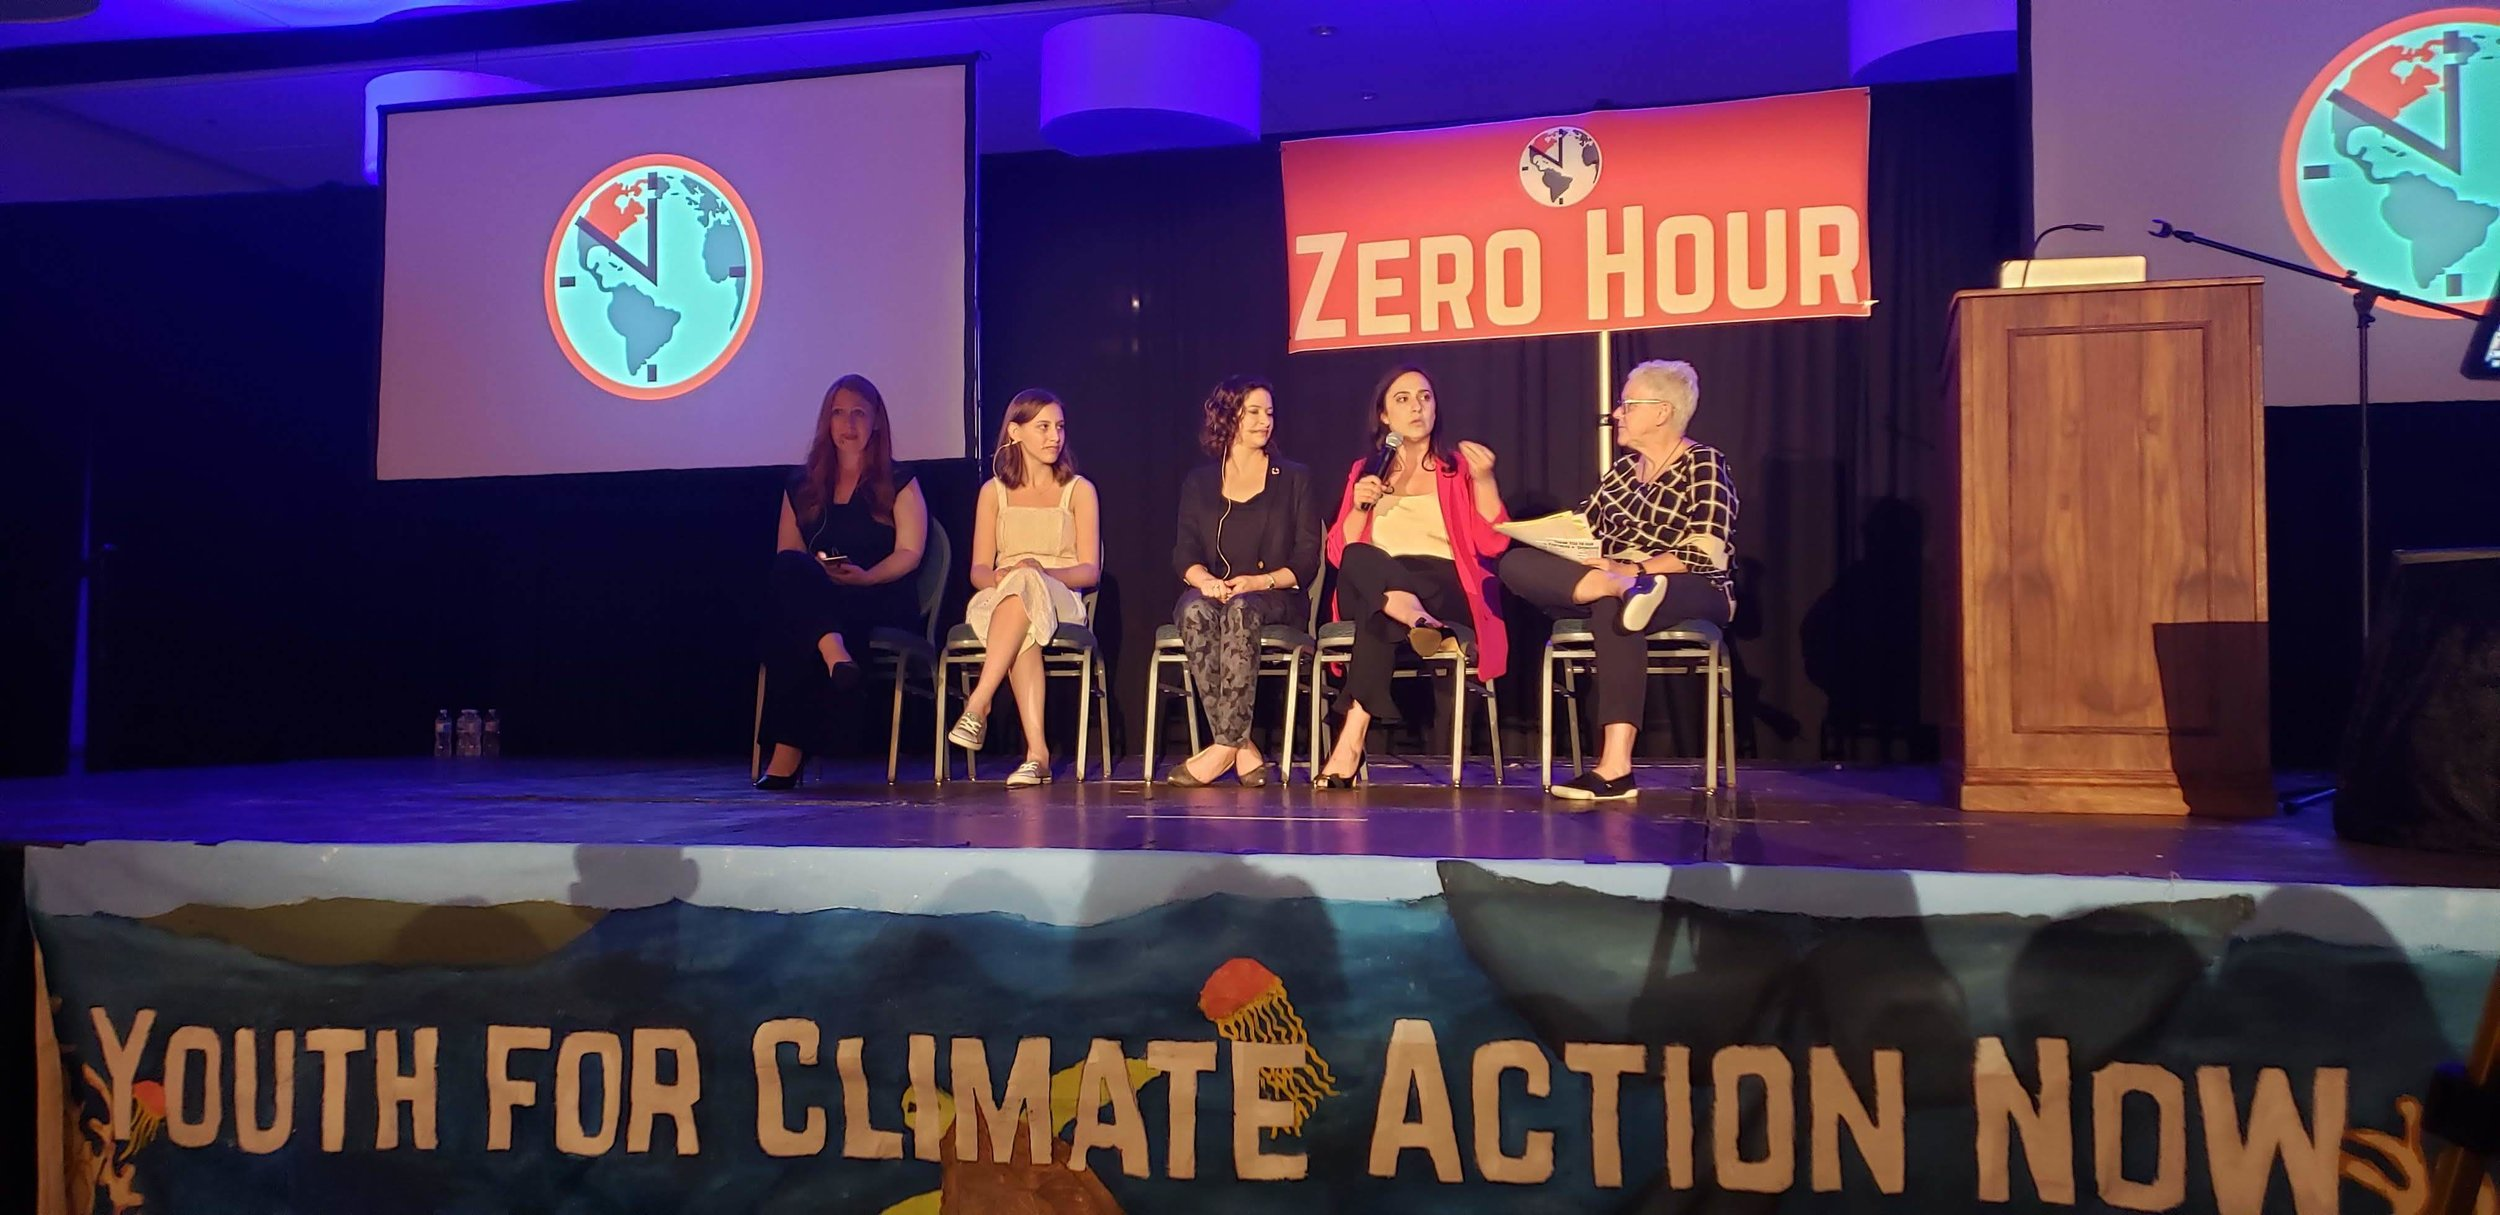 Alexandia Villaseñor (the second from the left) on a panel with other women climate leaders.